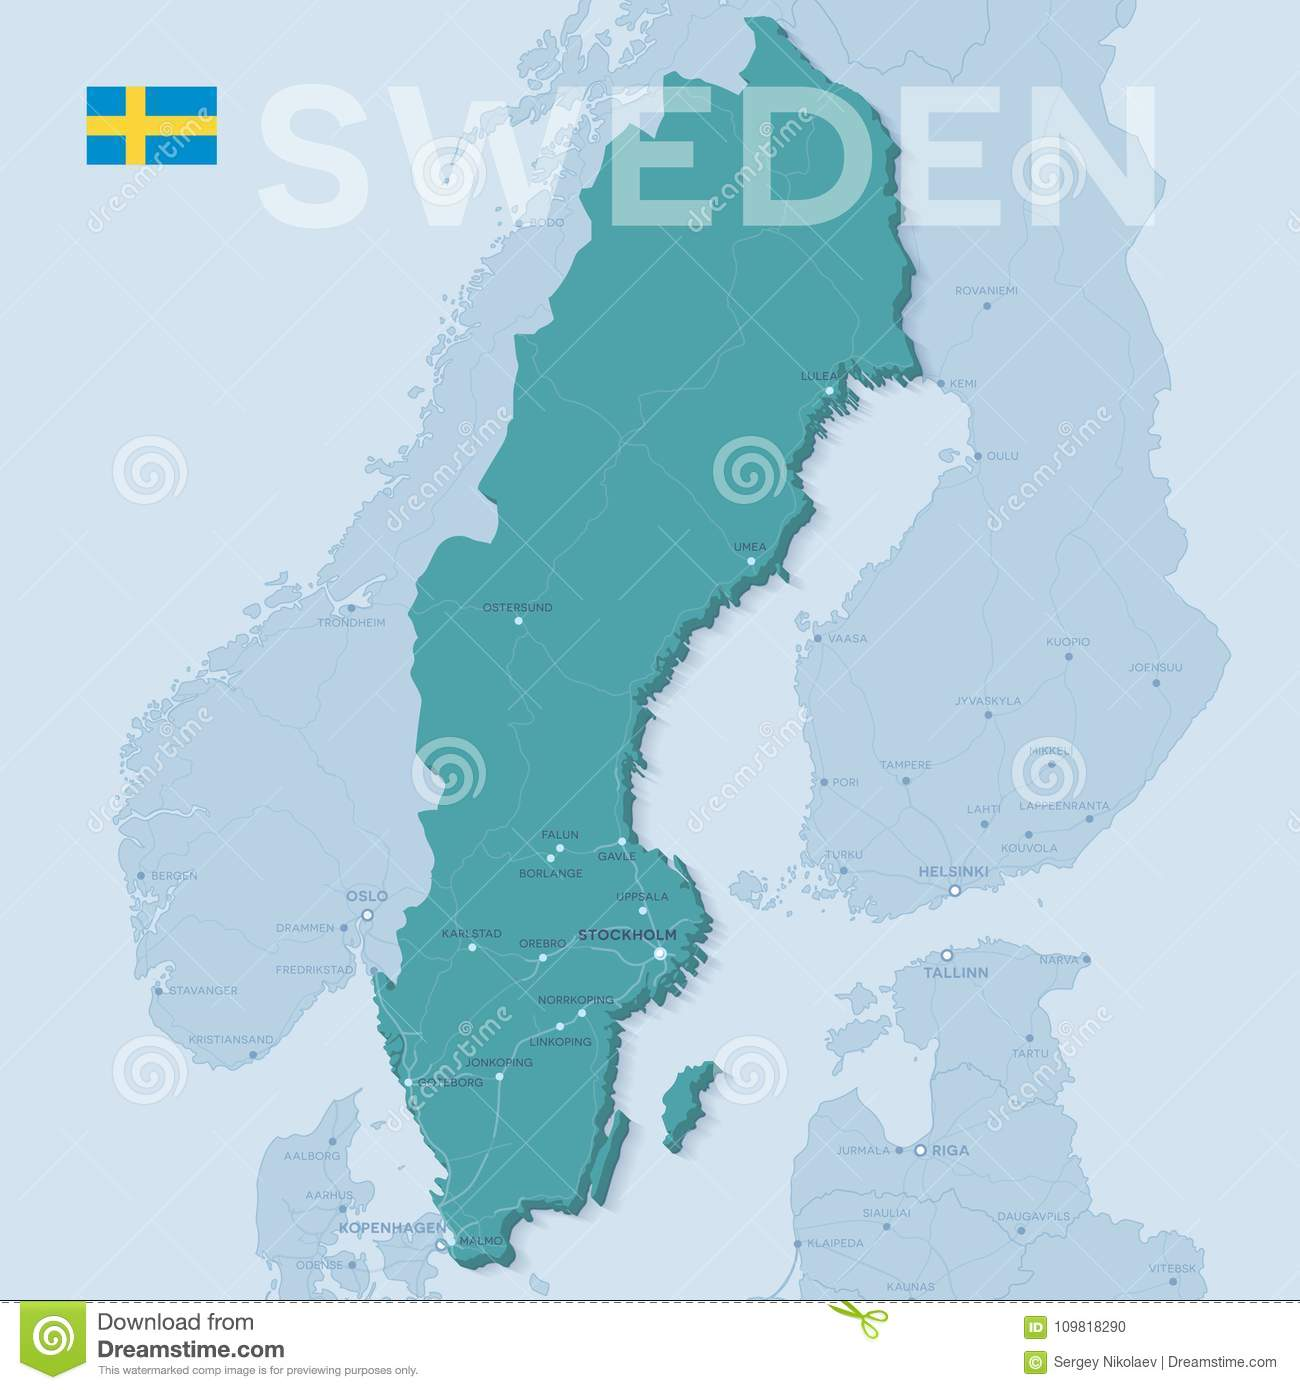 Europe Political Map With Cities.Map Of Cities And Roads In Sweden Stock Vector Illustration Of